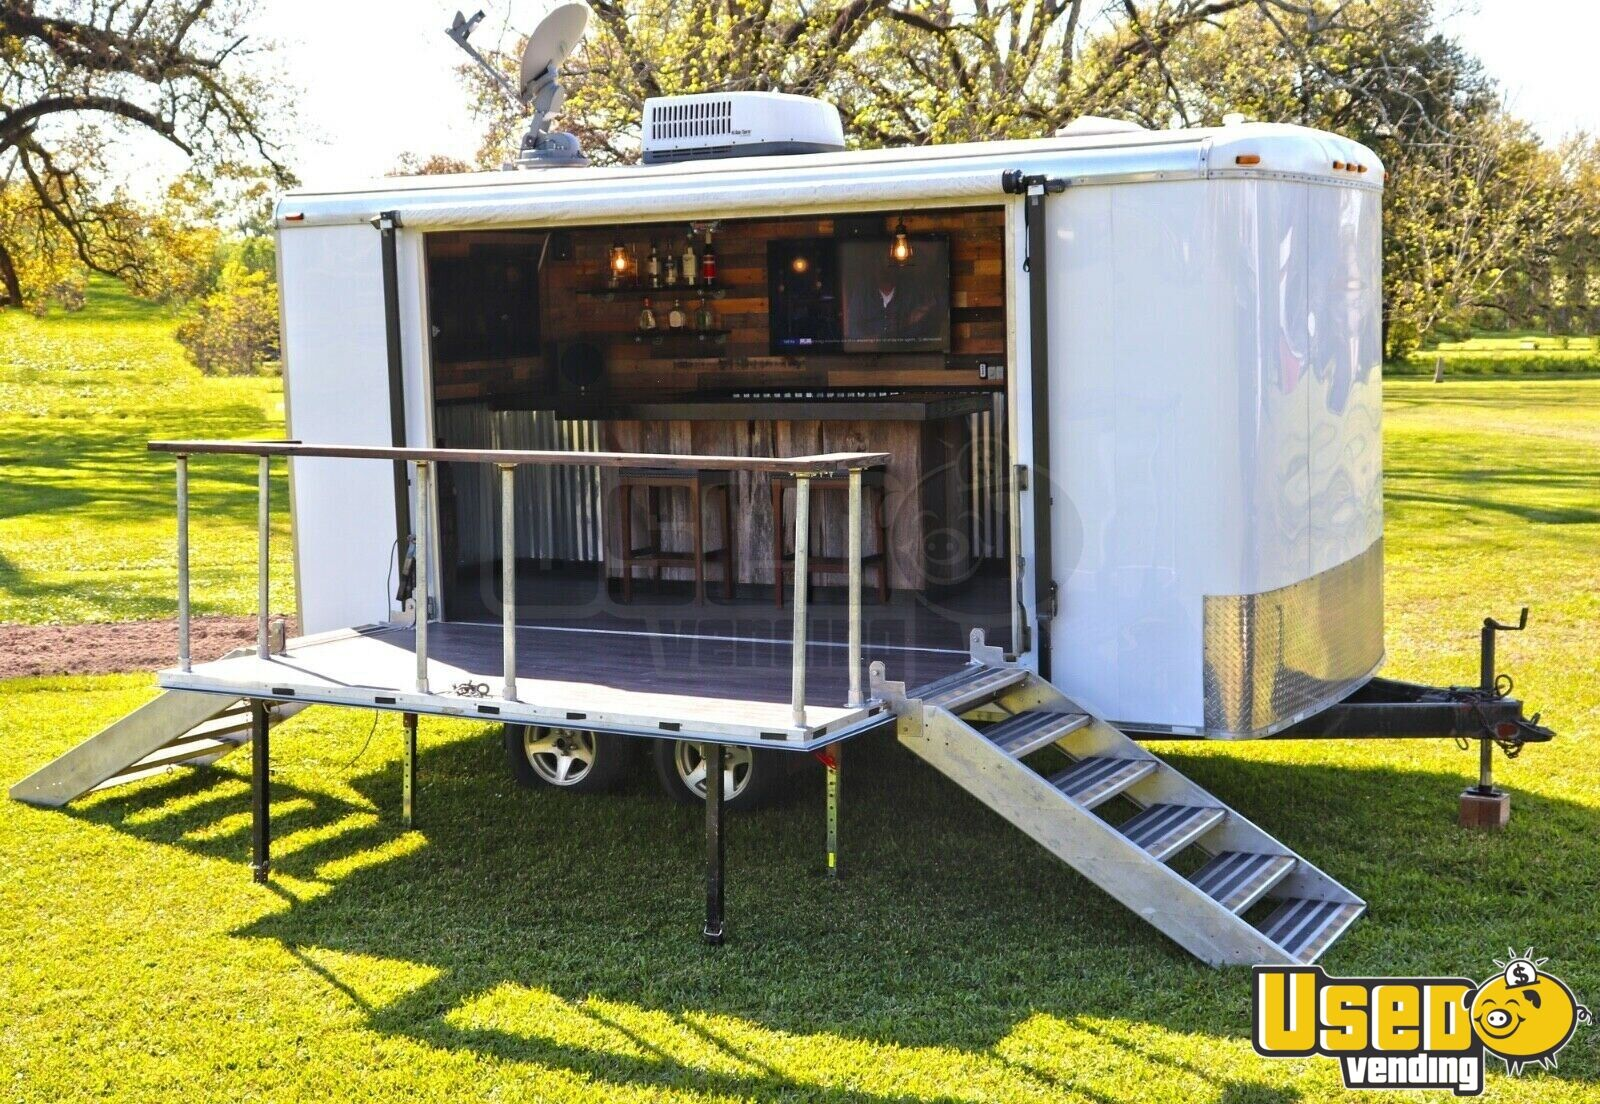 2001 Forrest River 8 X 16 Mobile Party Bar Event Trailer For Sale In Louisiana Ebay